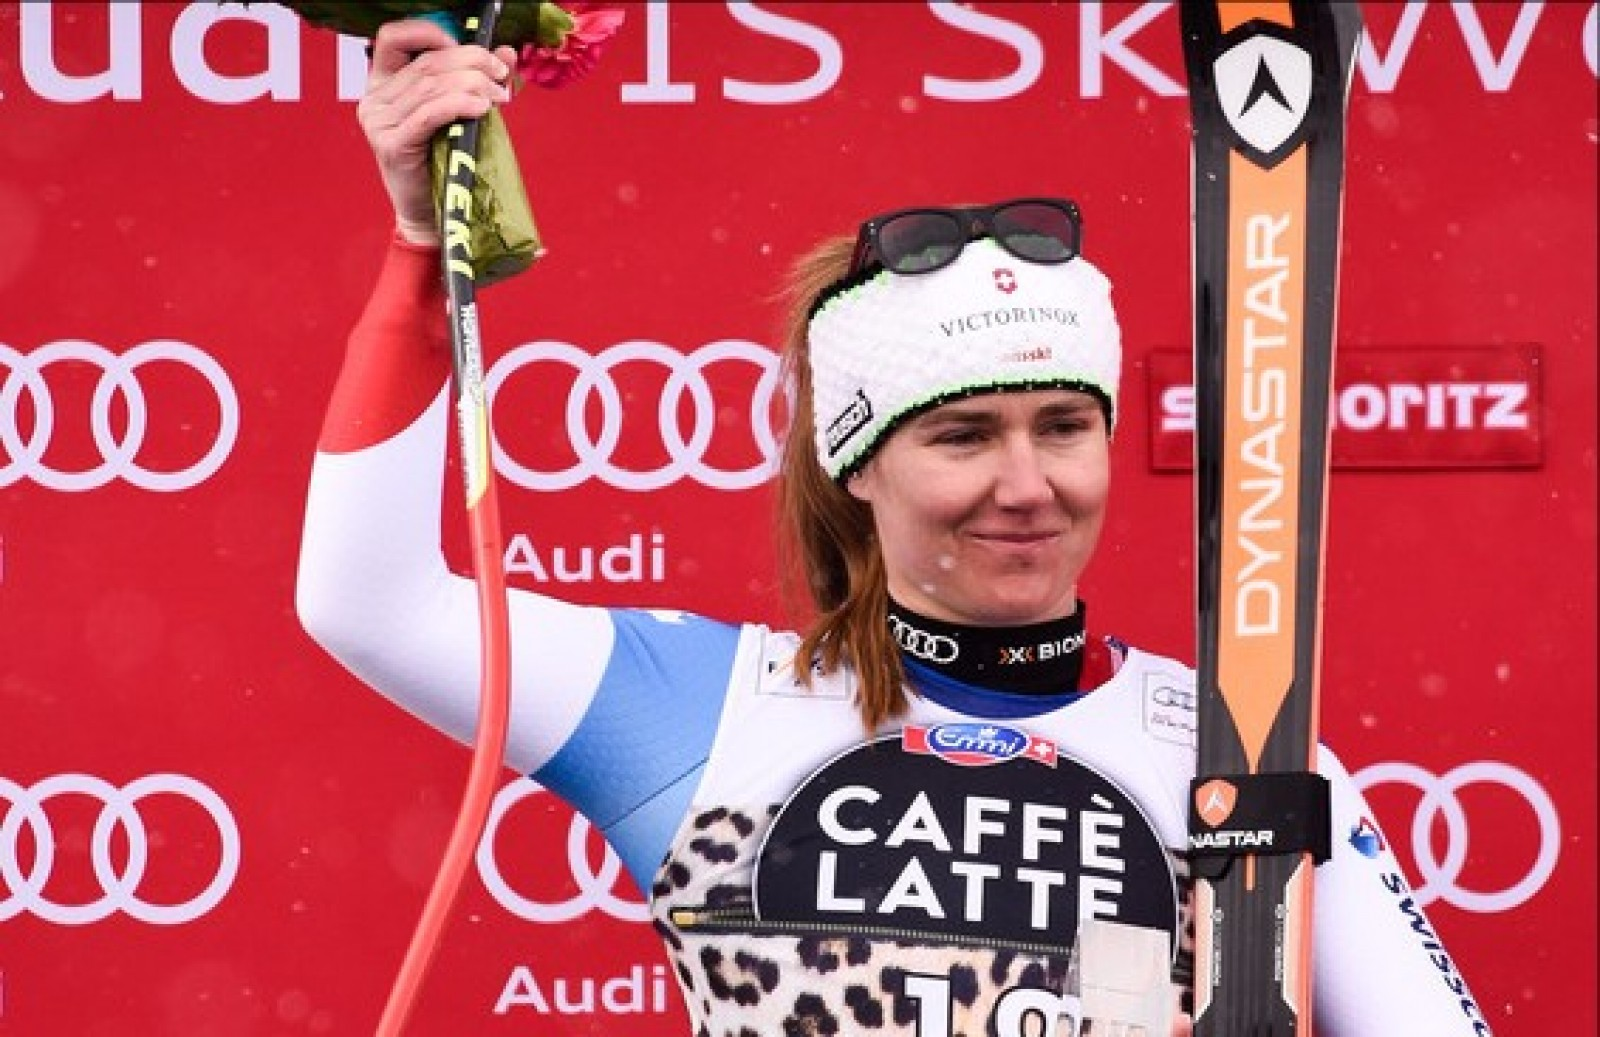 Fabienne Suter, 2nd of the Downhill World Cup